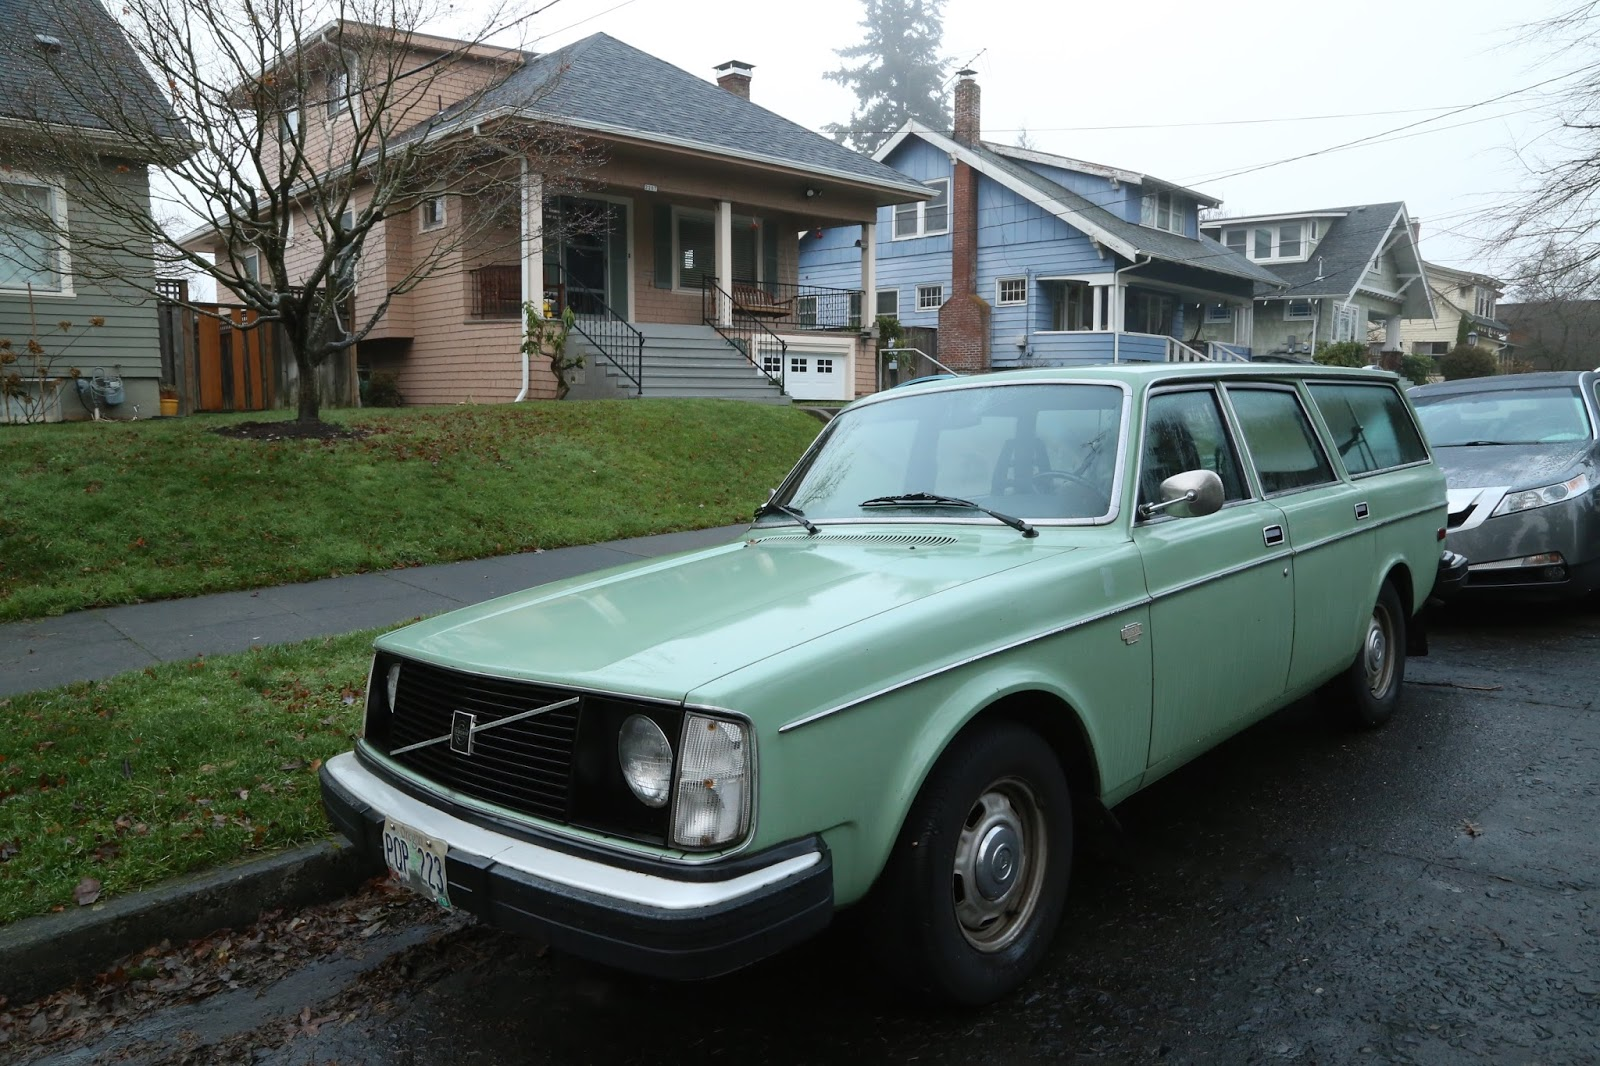 OLD PARKED CARS.: 1979 Volvo 245 DL wagon.